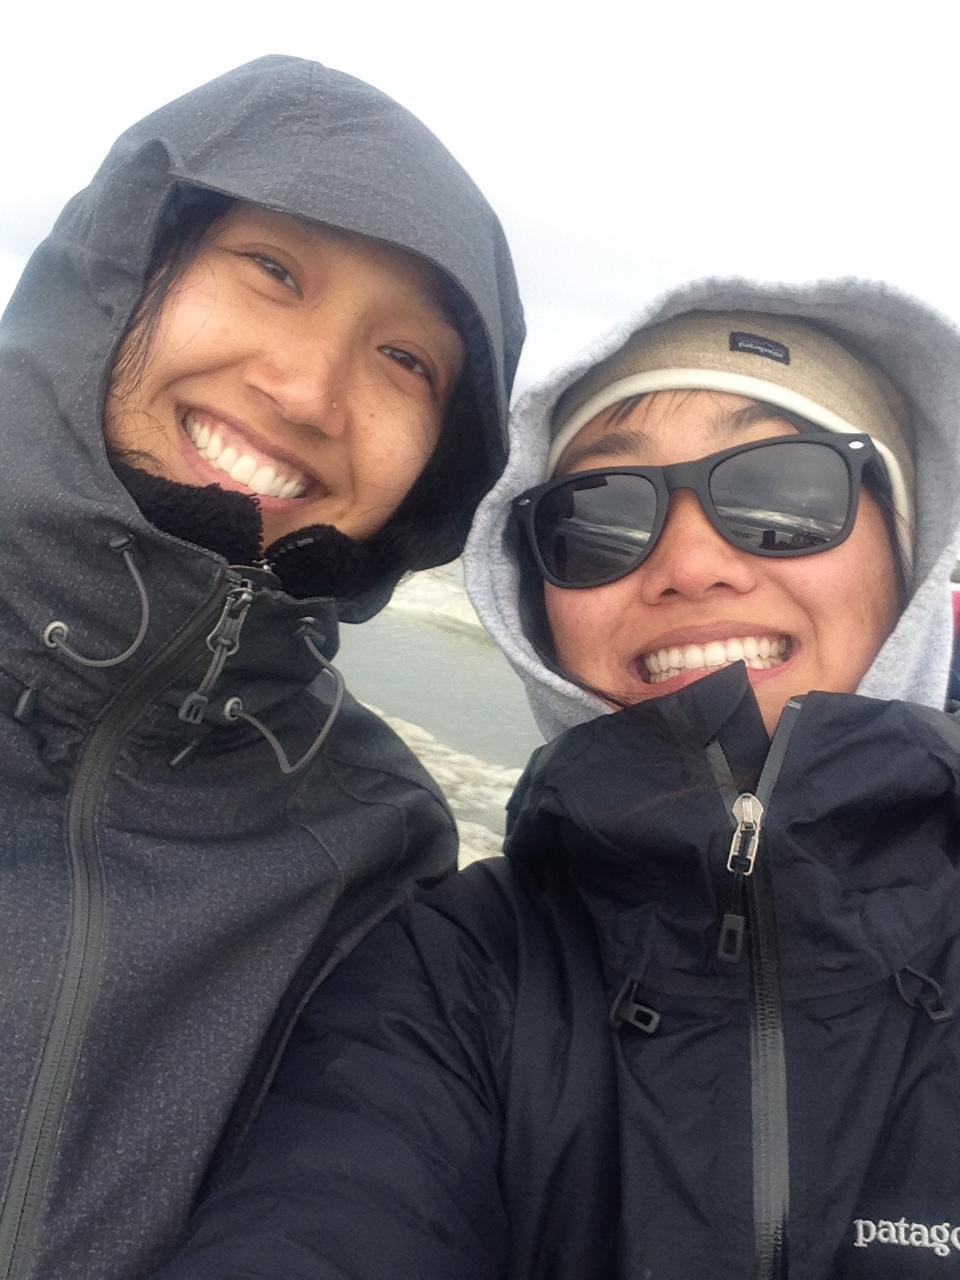 Researchers Sarah Huang (right) and Charlene Apok (left) are all smiles while collecting data. Photo: Sarah Huang